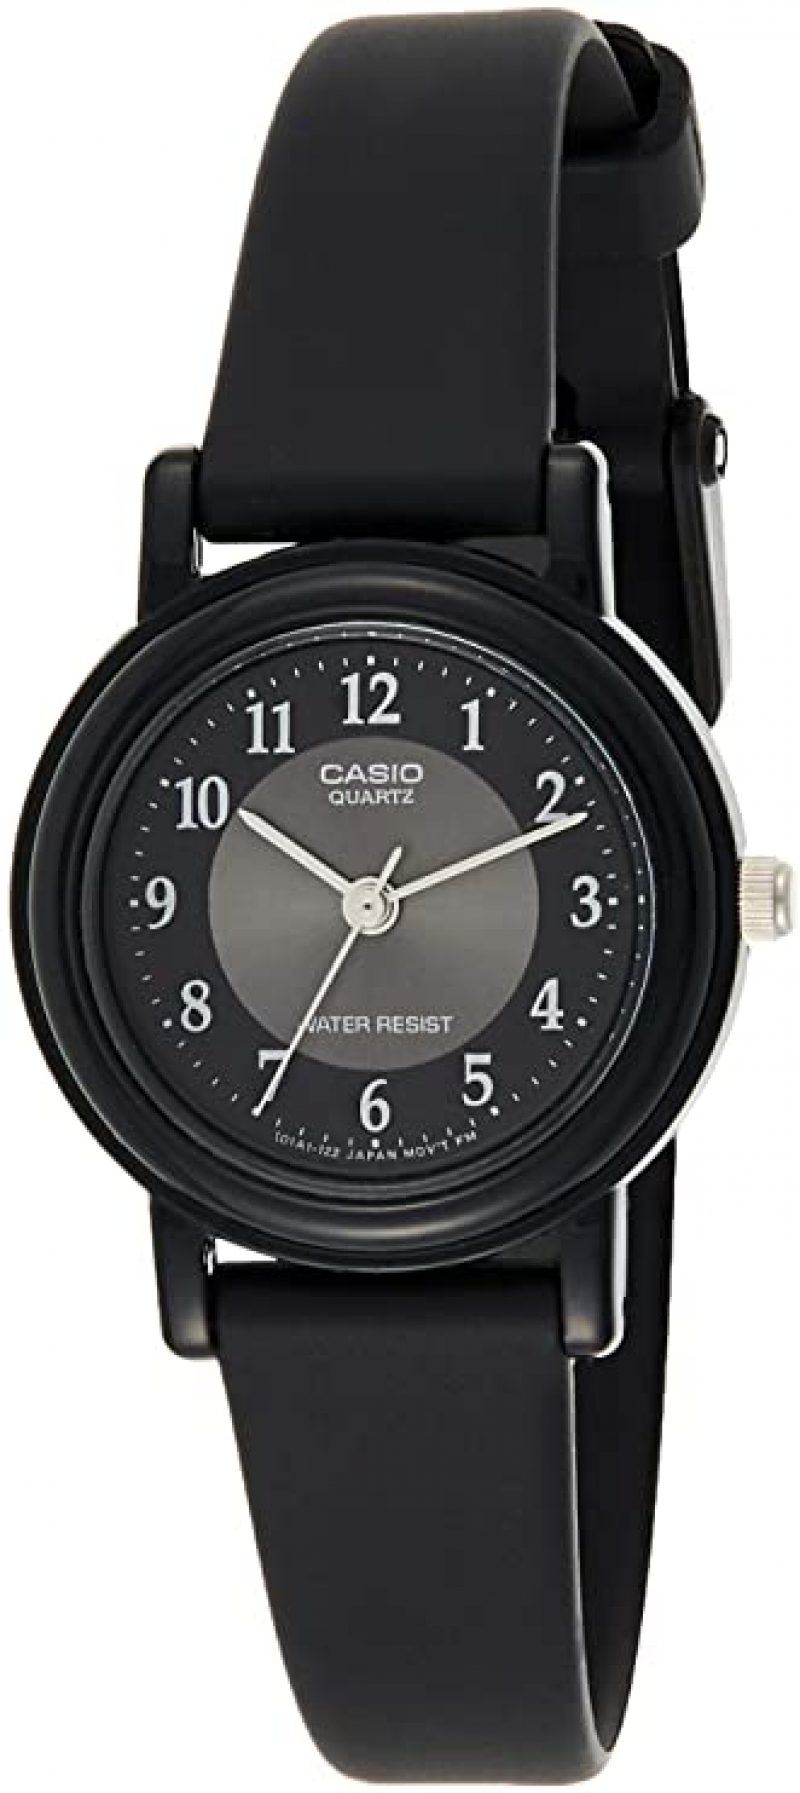 ihocon: Casio Women's LQ139A-1B3 Black Classic Resin Watch 卡西歐女錶